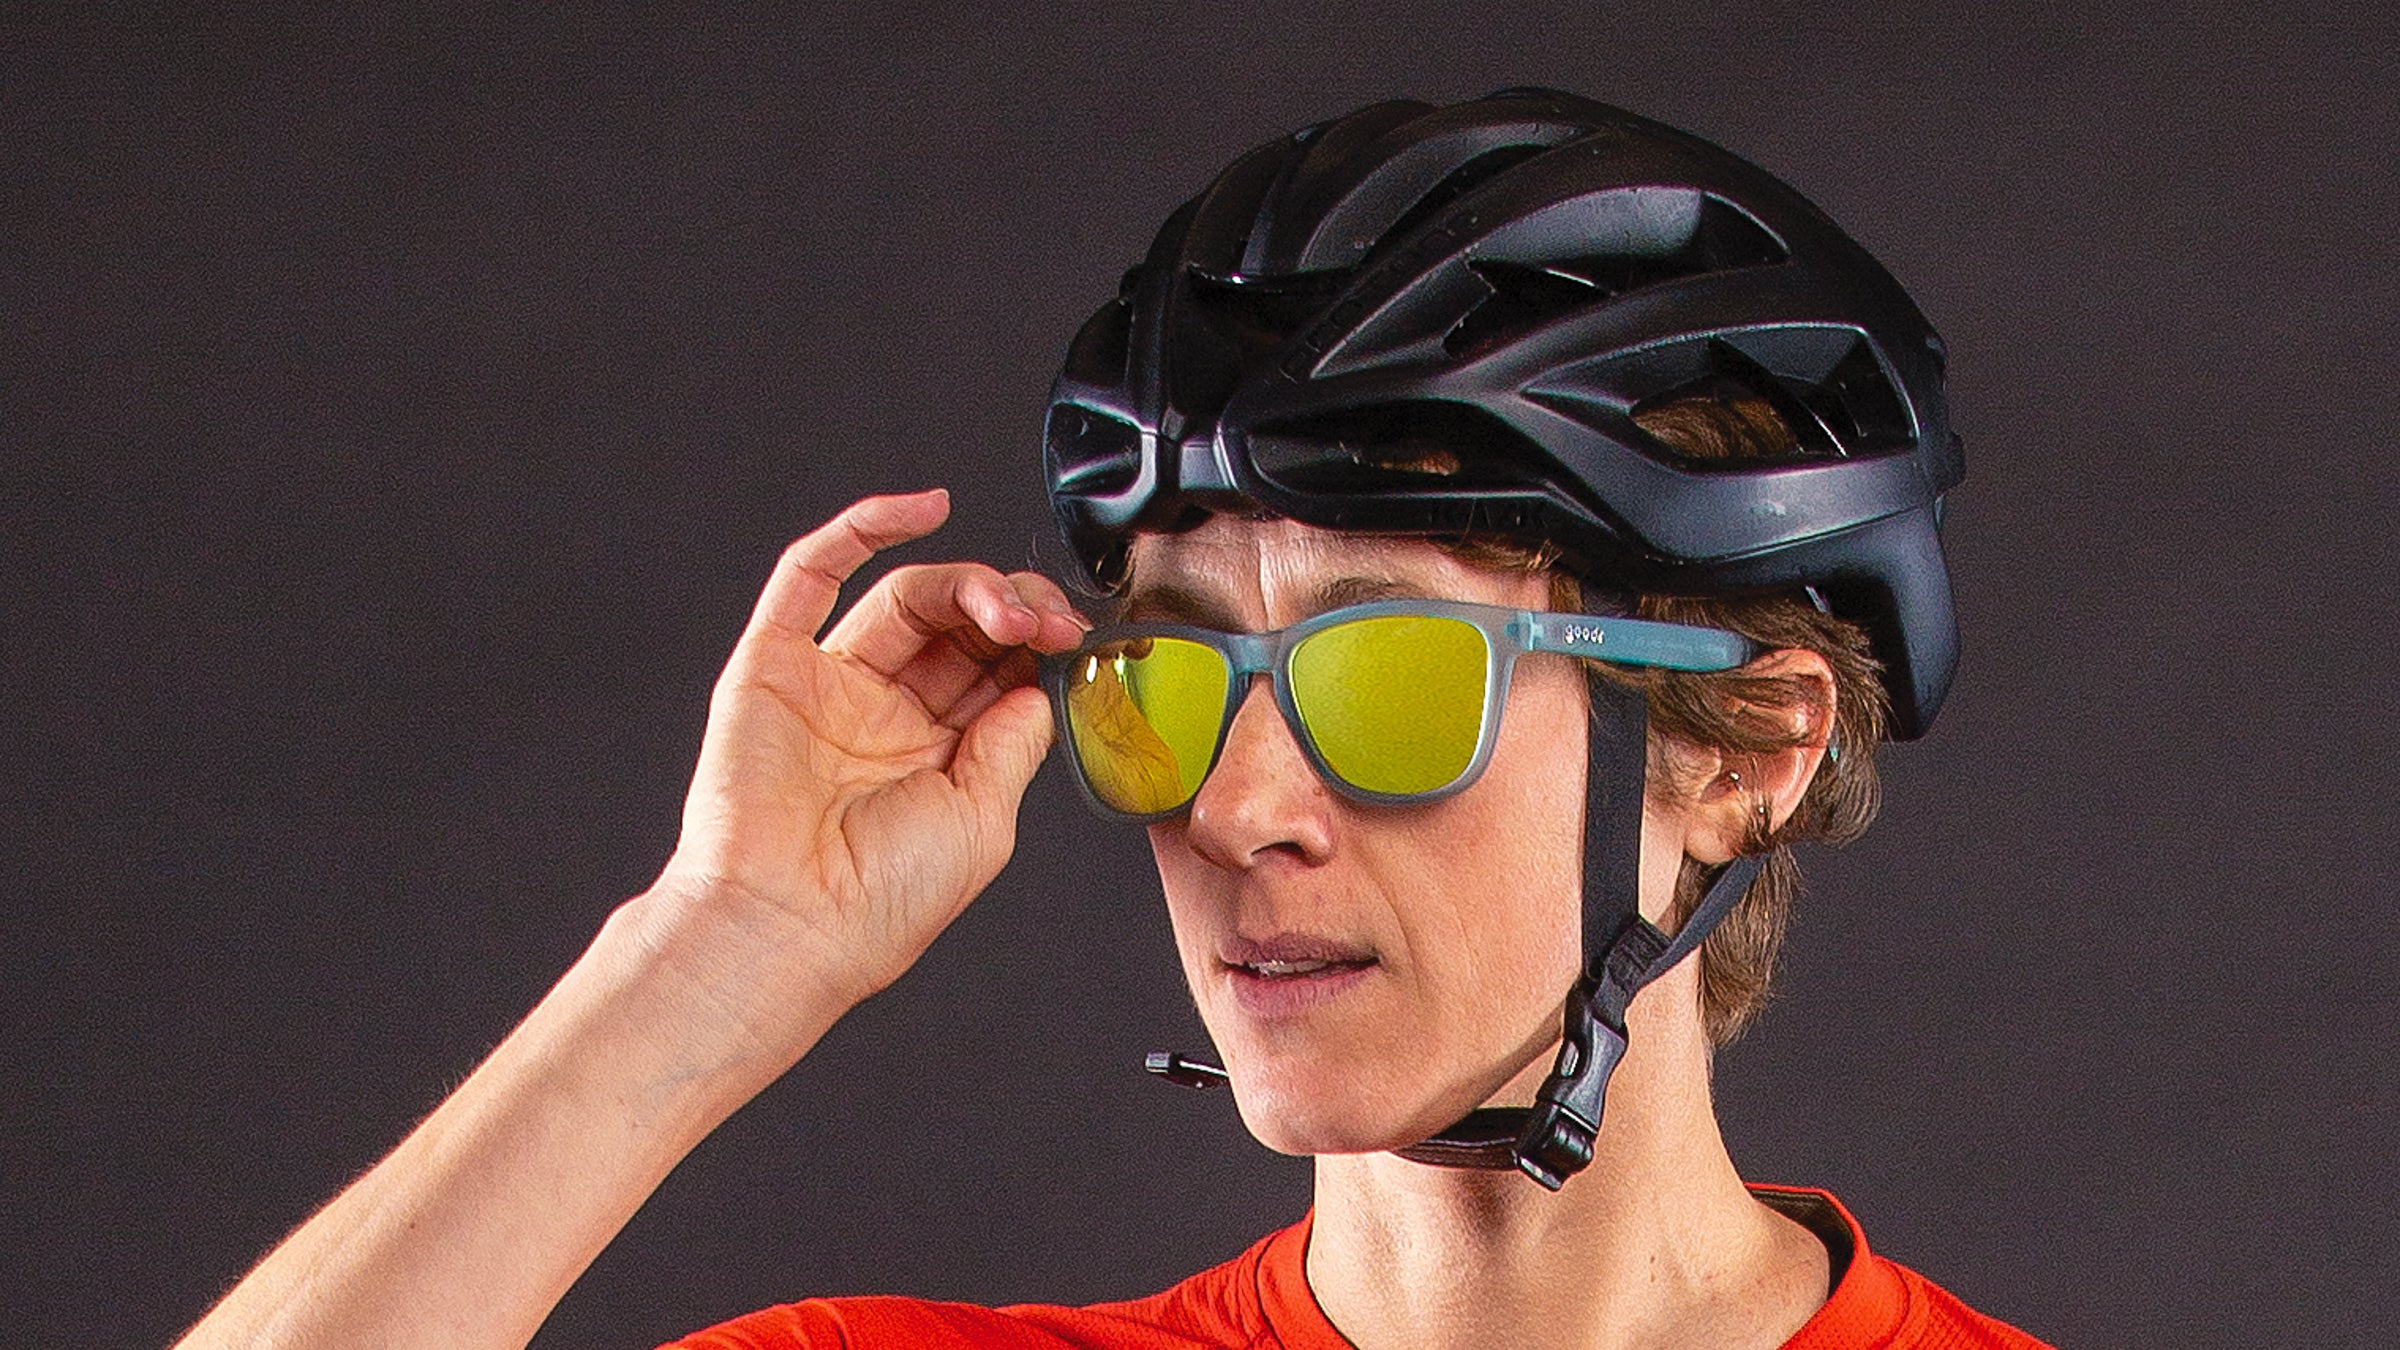 Close-up of woman wearing cycling helmet adjusting her sunglasses